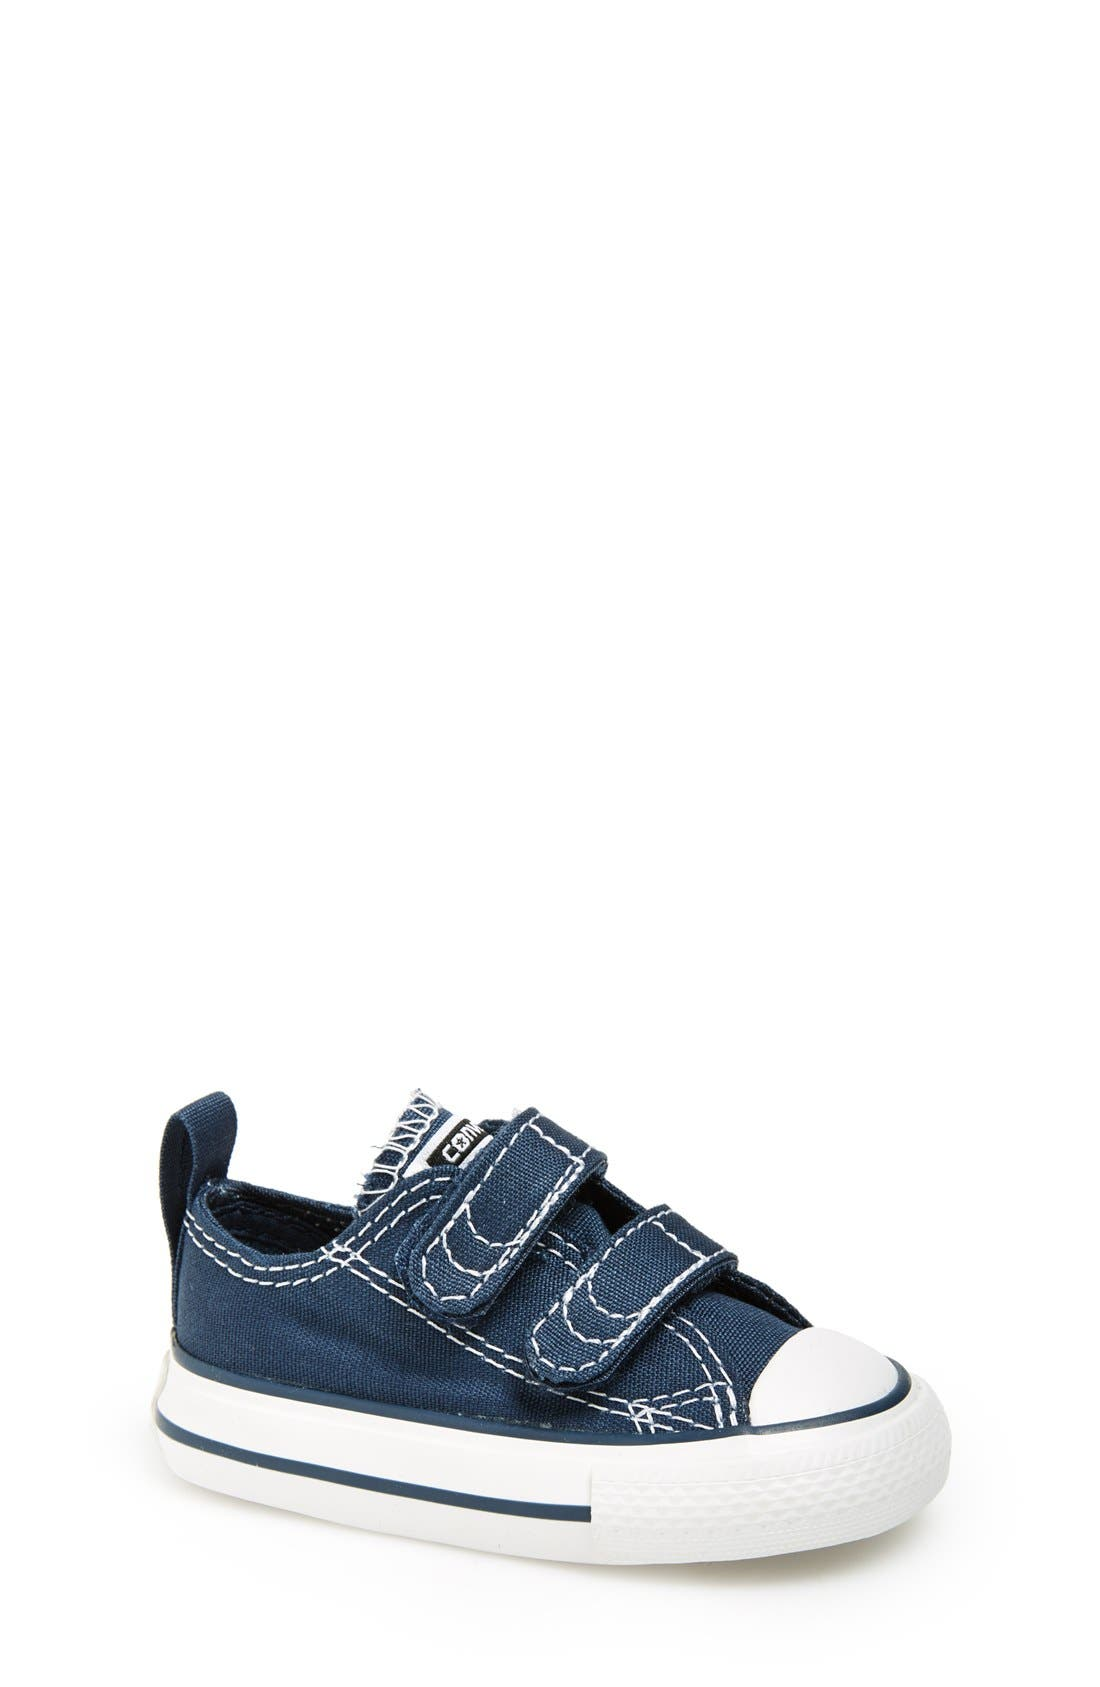 Main Image - Converse Chuck Taylor® 'Double Strap' Sneaker (Baby, Walker & Toddler)